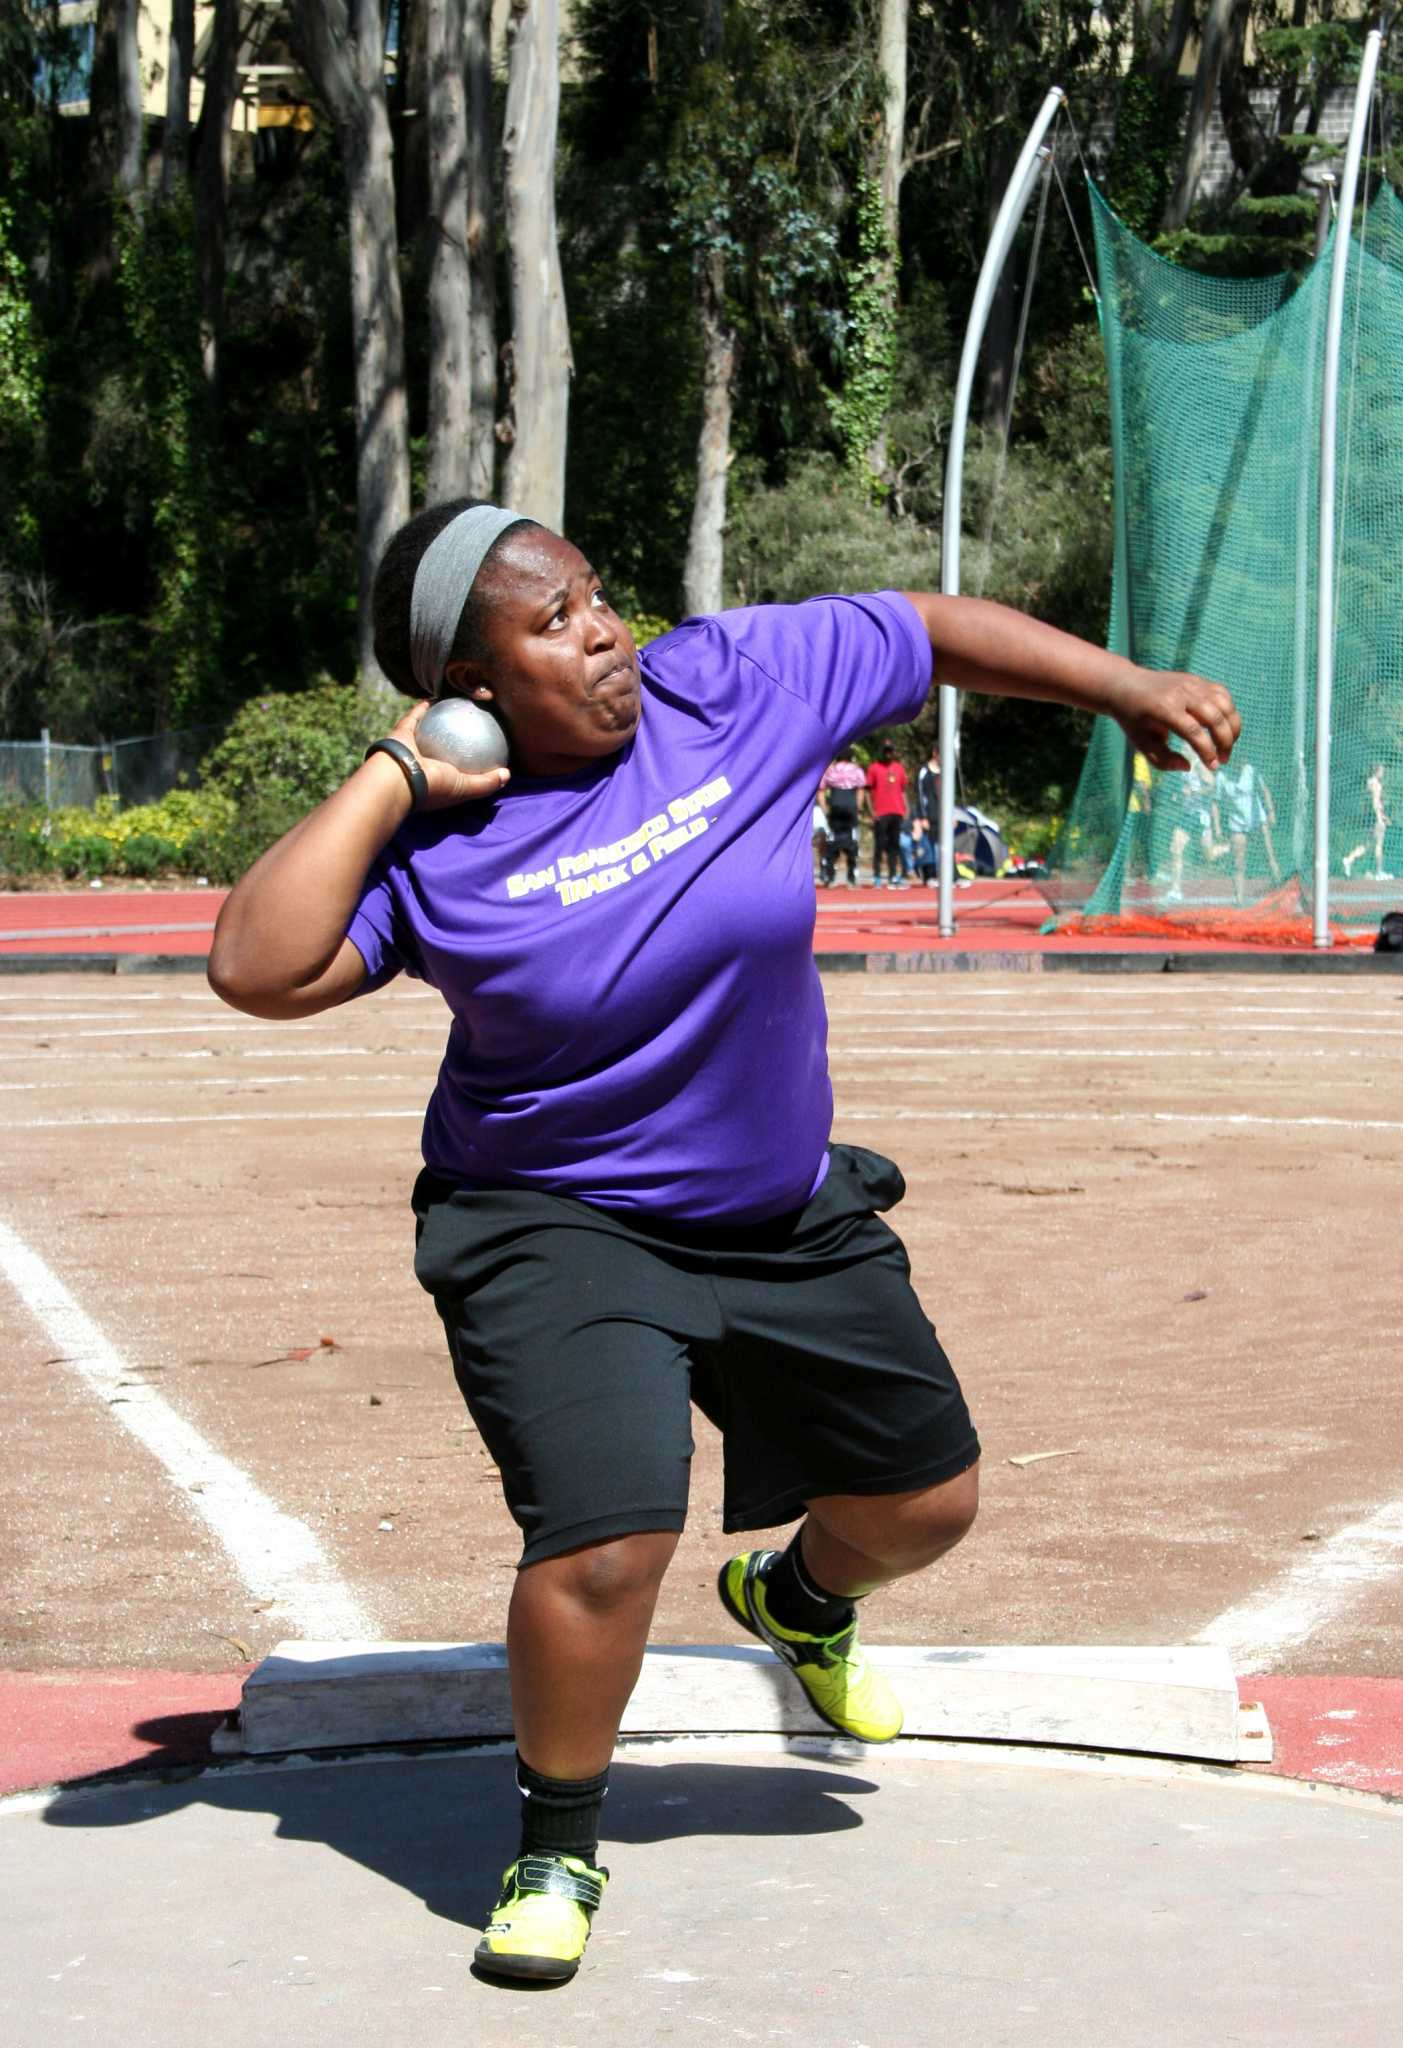 Ariana Luster, an SF State student and track and field athlete, died Wednesday, Oct. 21 after battling cancer. She was a member of the Gator's track and field team in 2013-2014. Luster prepares to throw a weight during a regular tack and field practice at the SF State track on Cox Stadium February 10, 2014.  (Photo Courtesy of SF State Athletic Department)